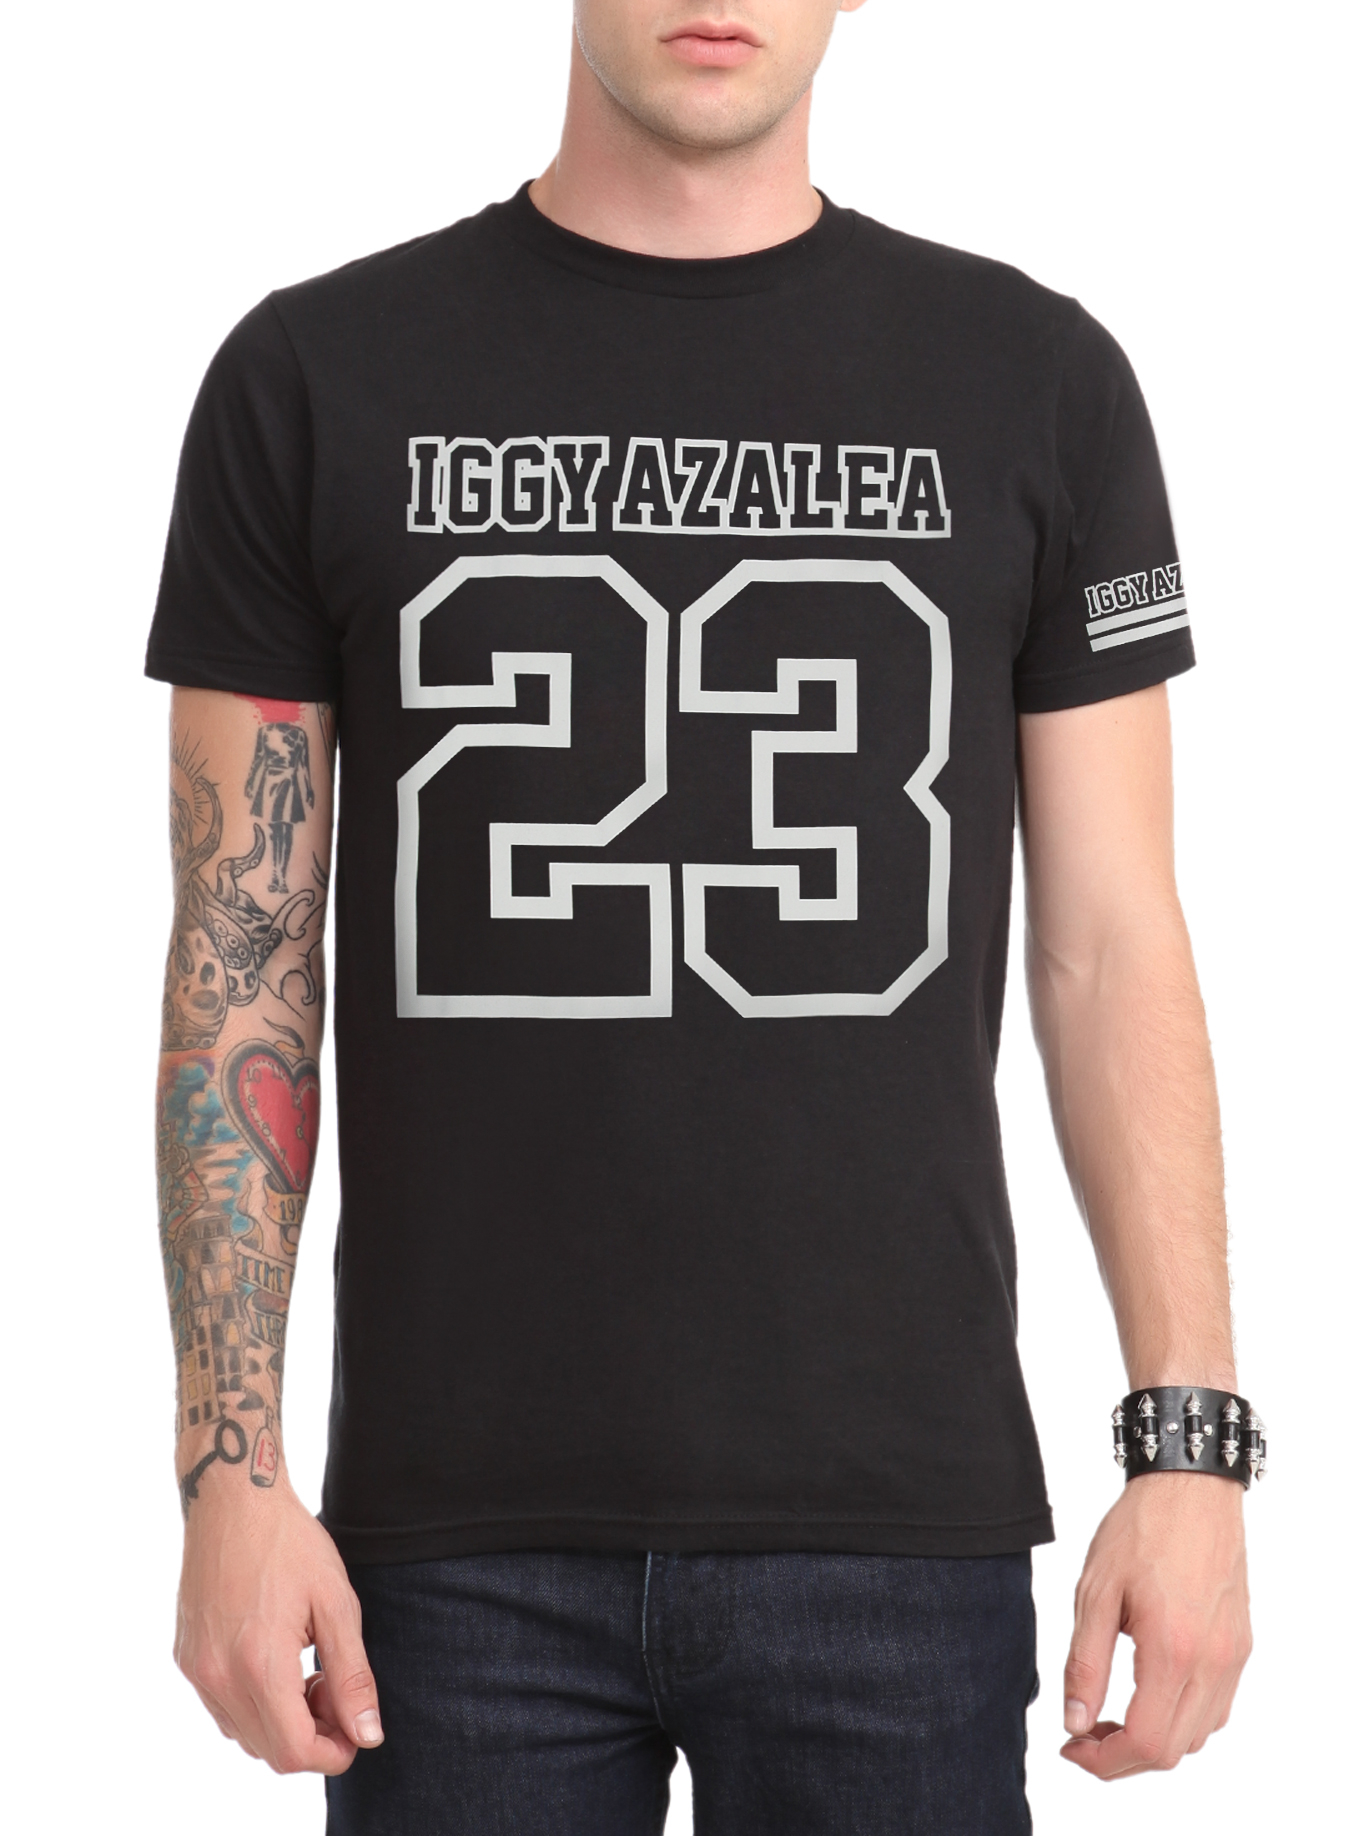 Iggy Azalea 23 T-Shirt | Hot Topic